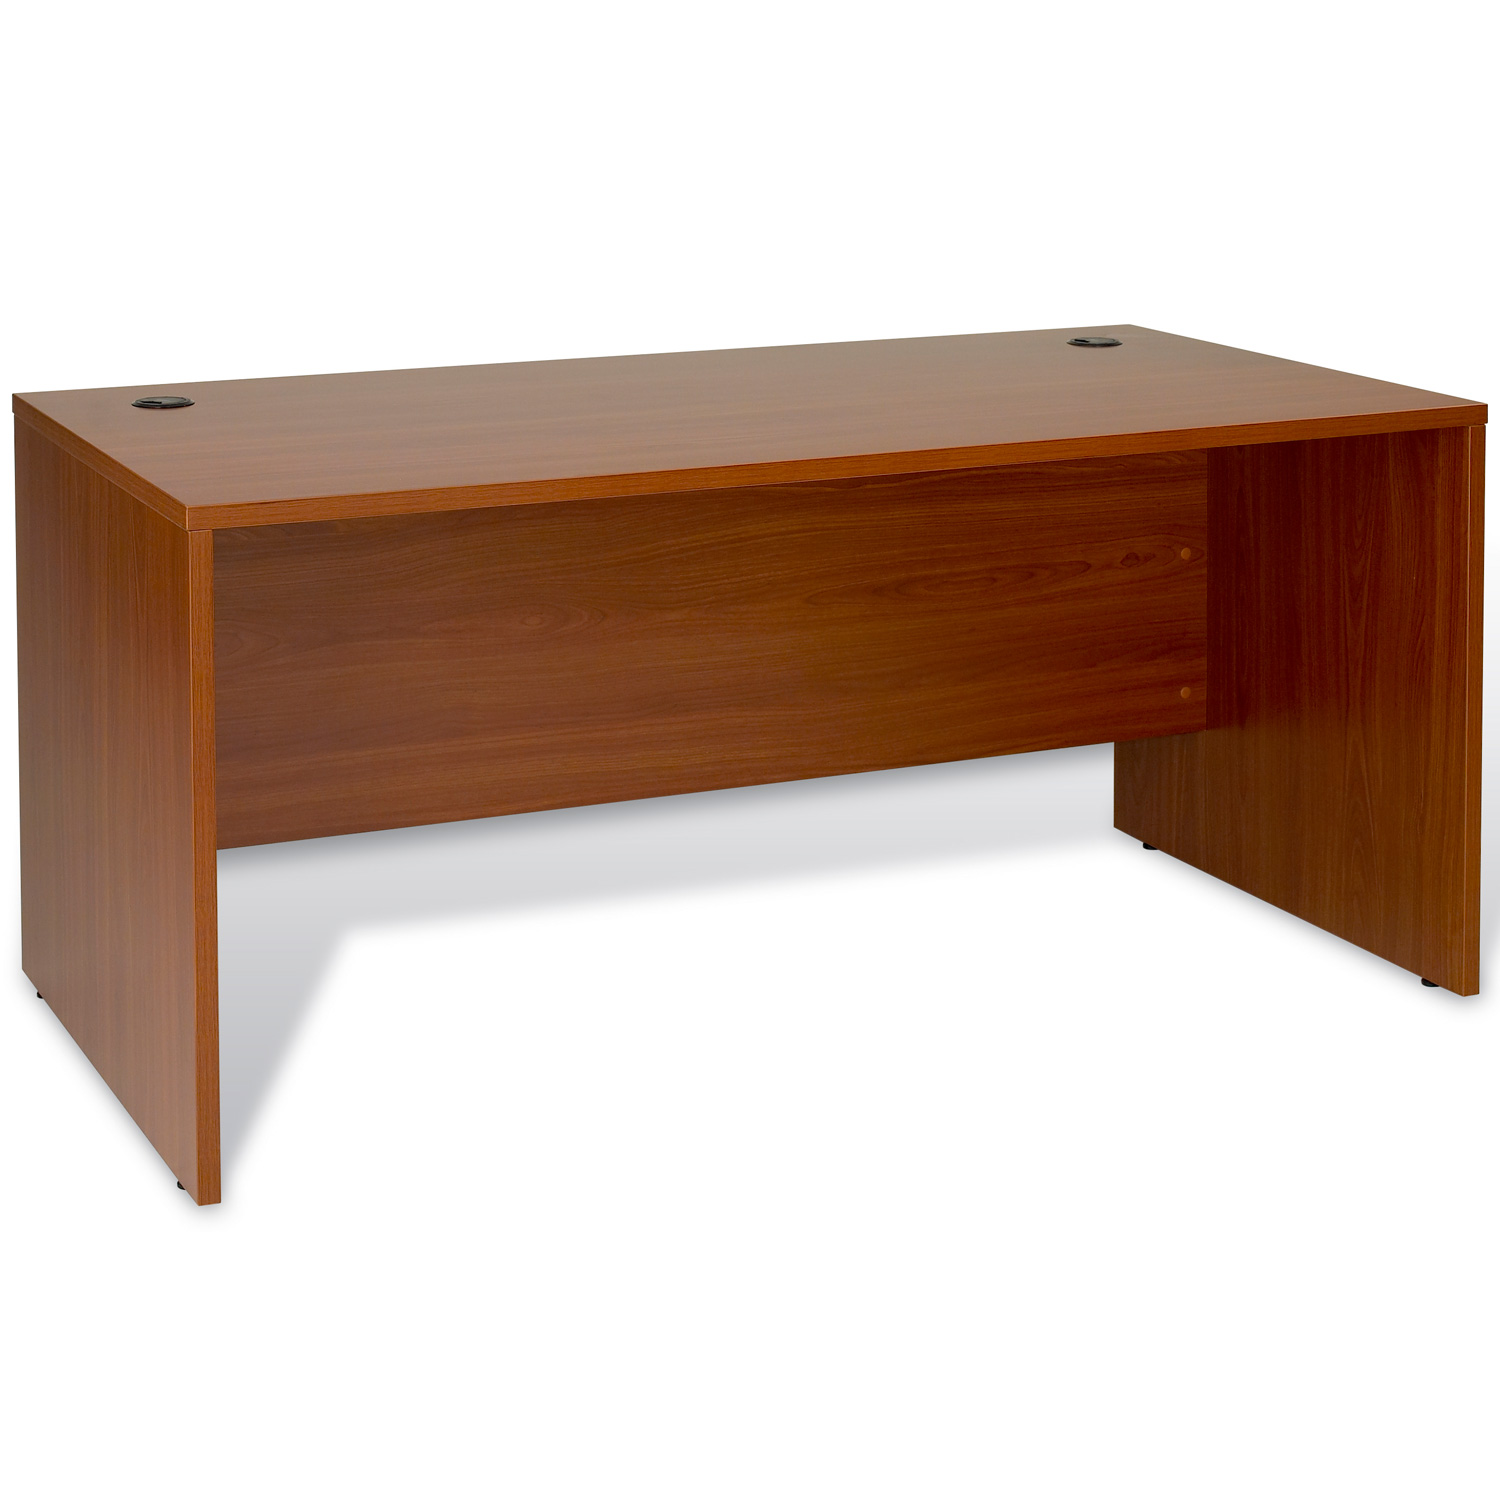 Pro X 63'' Manager's Desk - Modesty Panel, Cherry